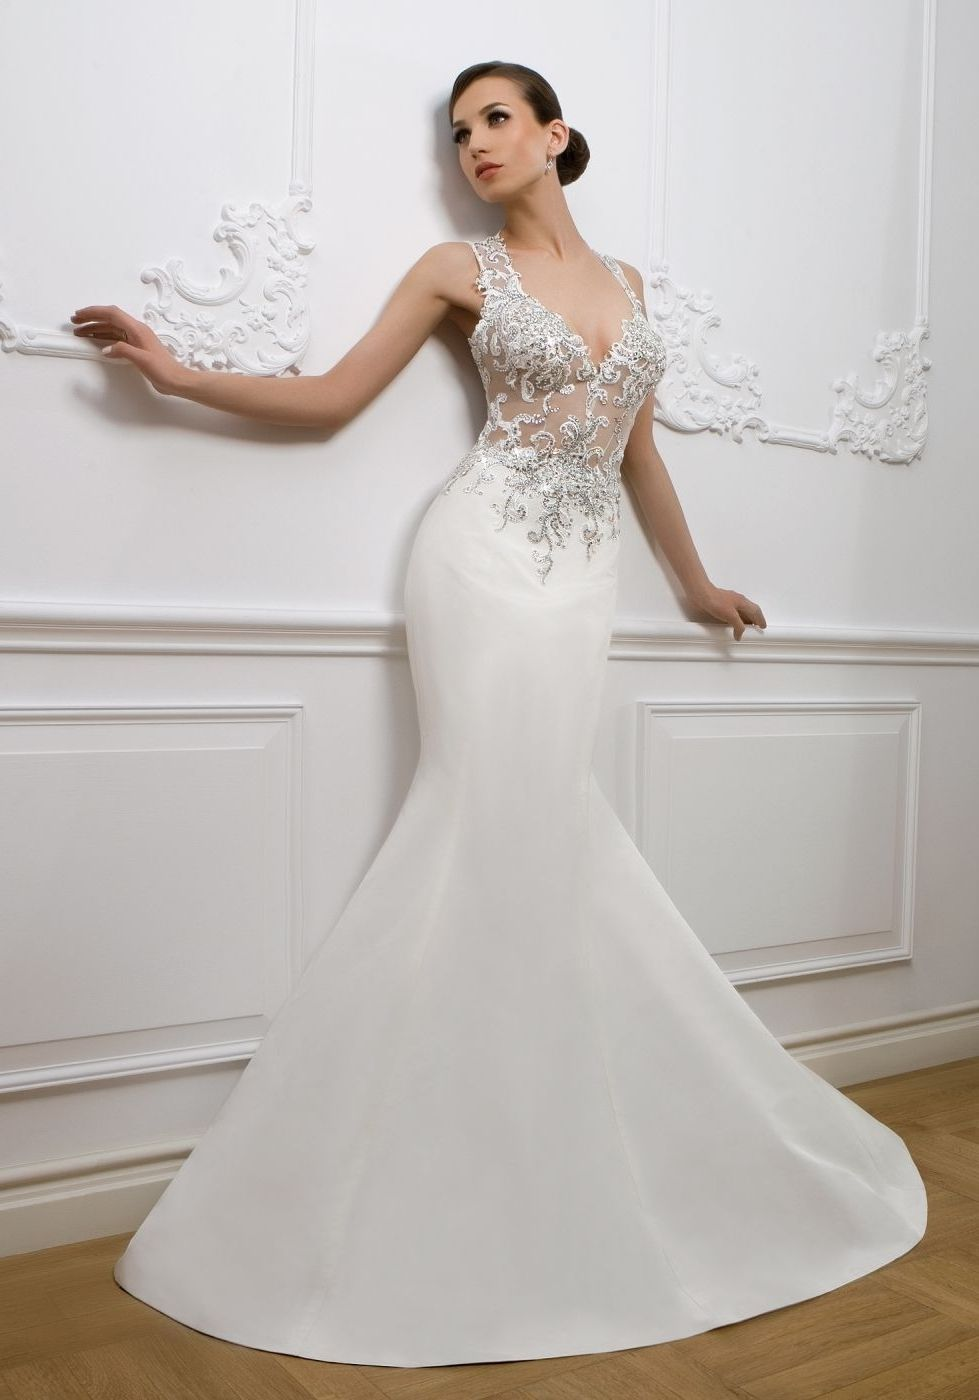 Wedding Gowns For Tall Brides | Wedding Dress | Pinterest | Gowns ...